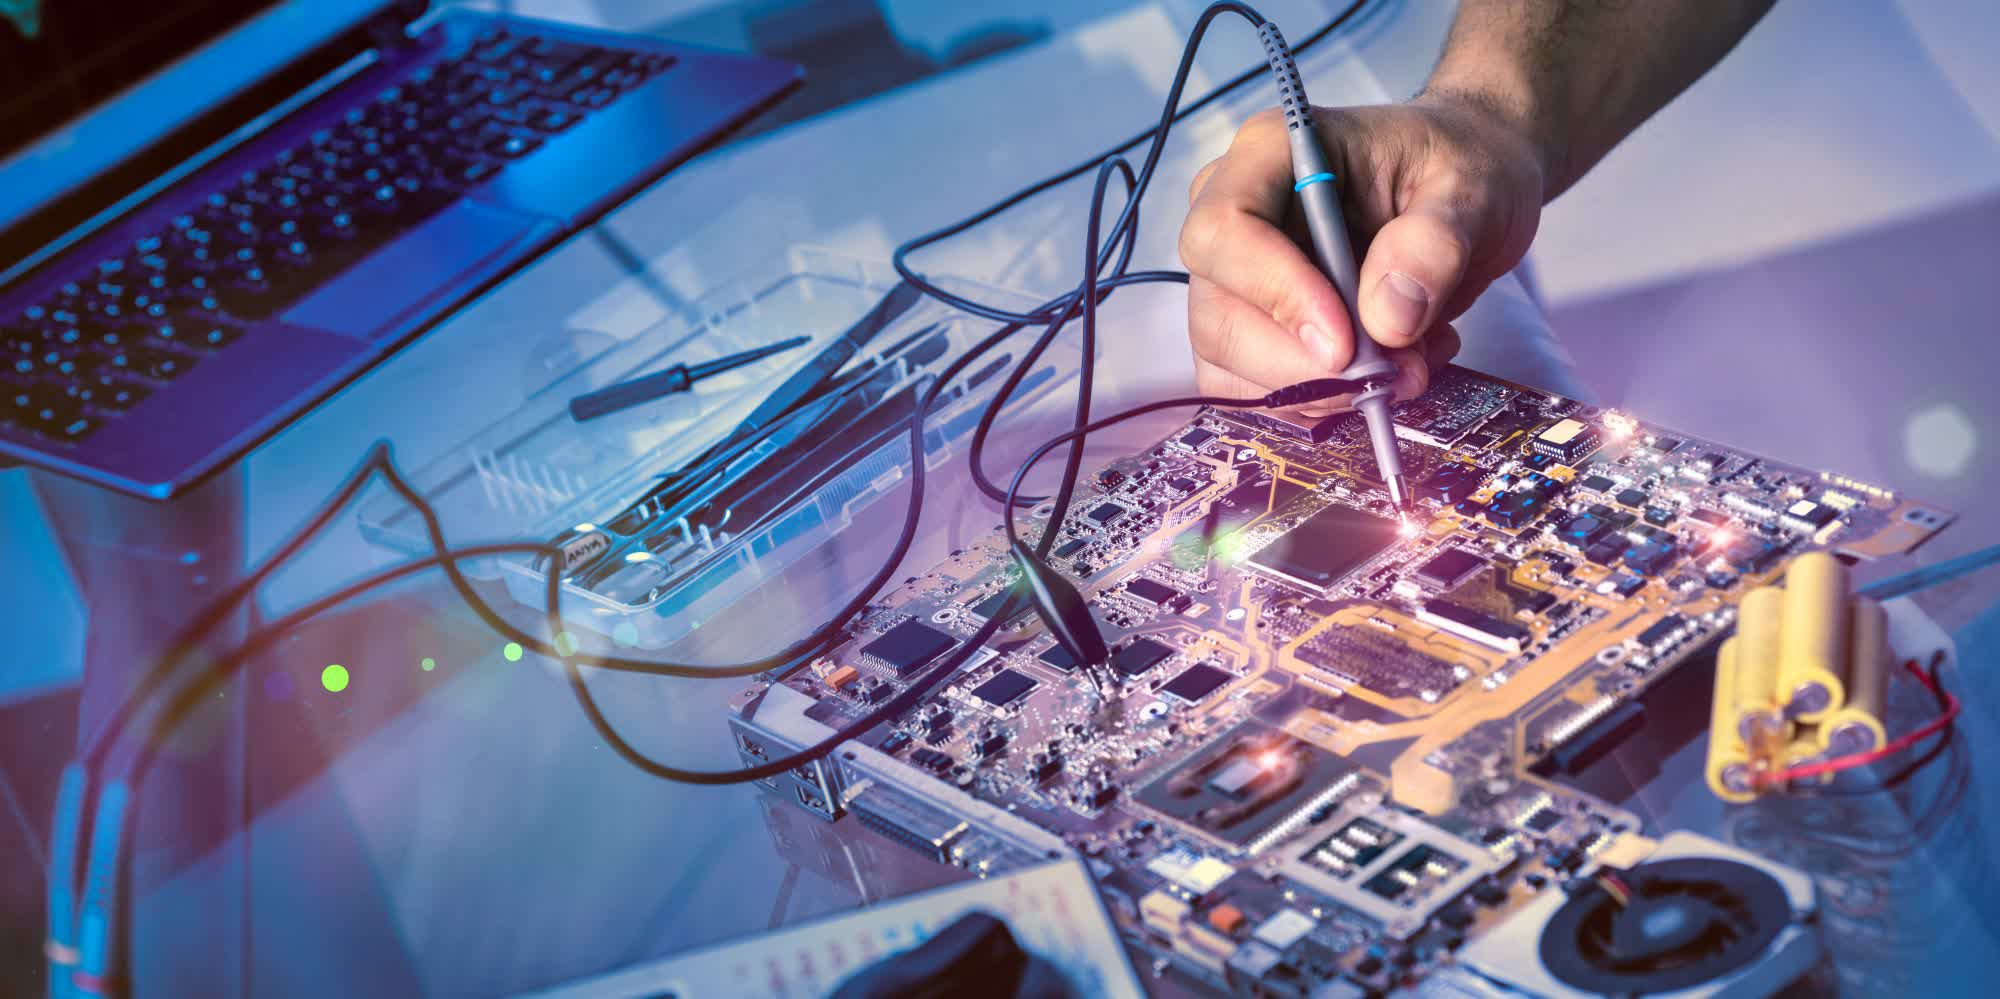 Get essential training on electrical engineering with this 13-course certification bundle